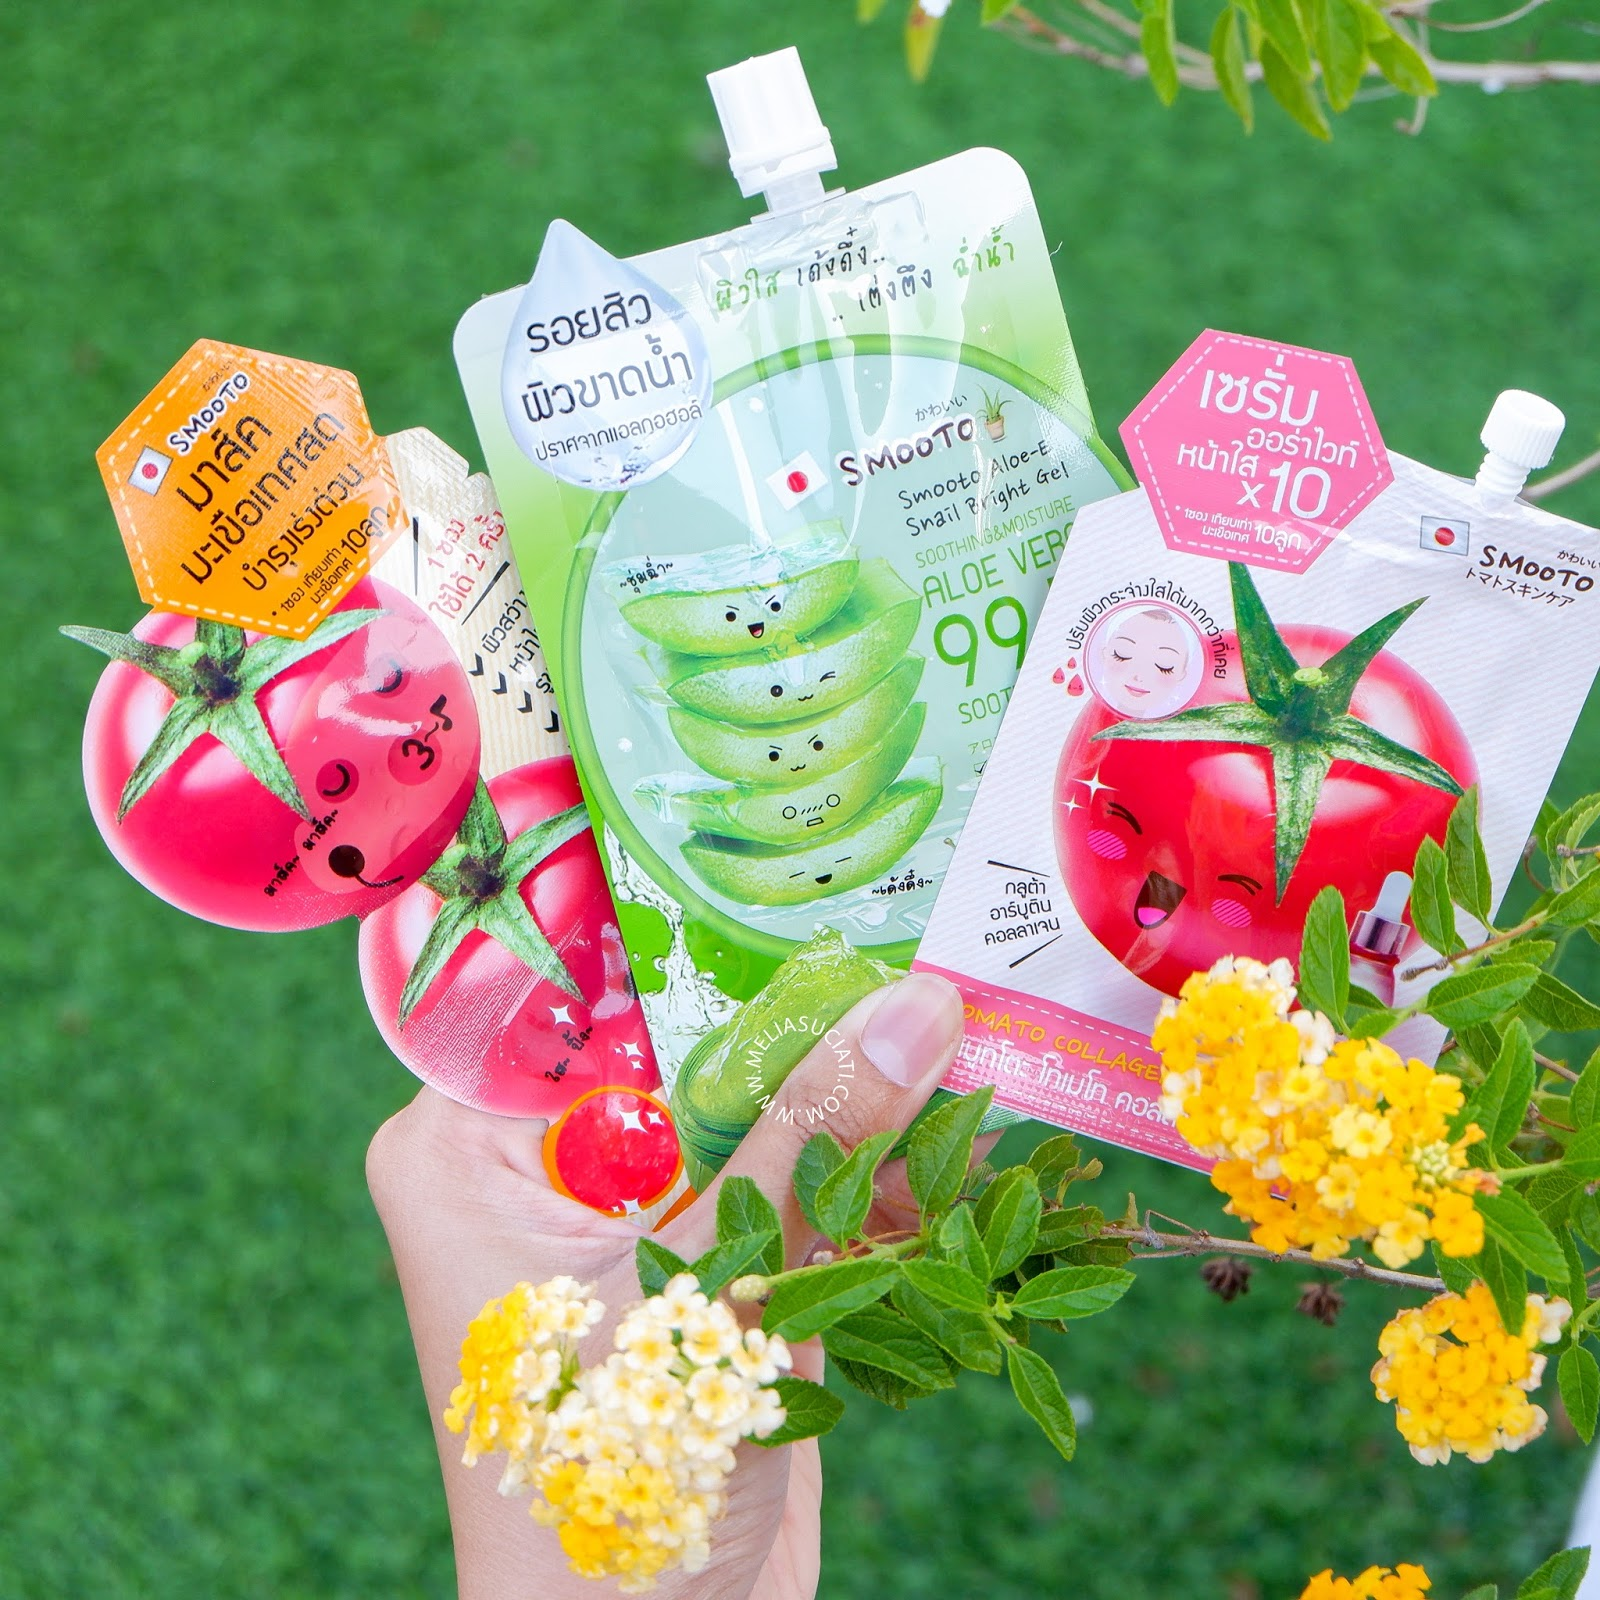 REVIEW SMOOTO ALOE-E SNAIL BRIGHT GEL, SMOOTO TOMATO COLLAGEN WHITE SERUM DAN SMOOTO TOMATO COLLAGEN WHITE&SMOOTH MASK